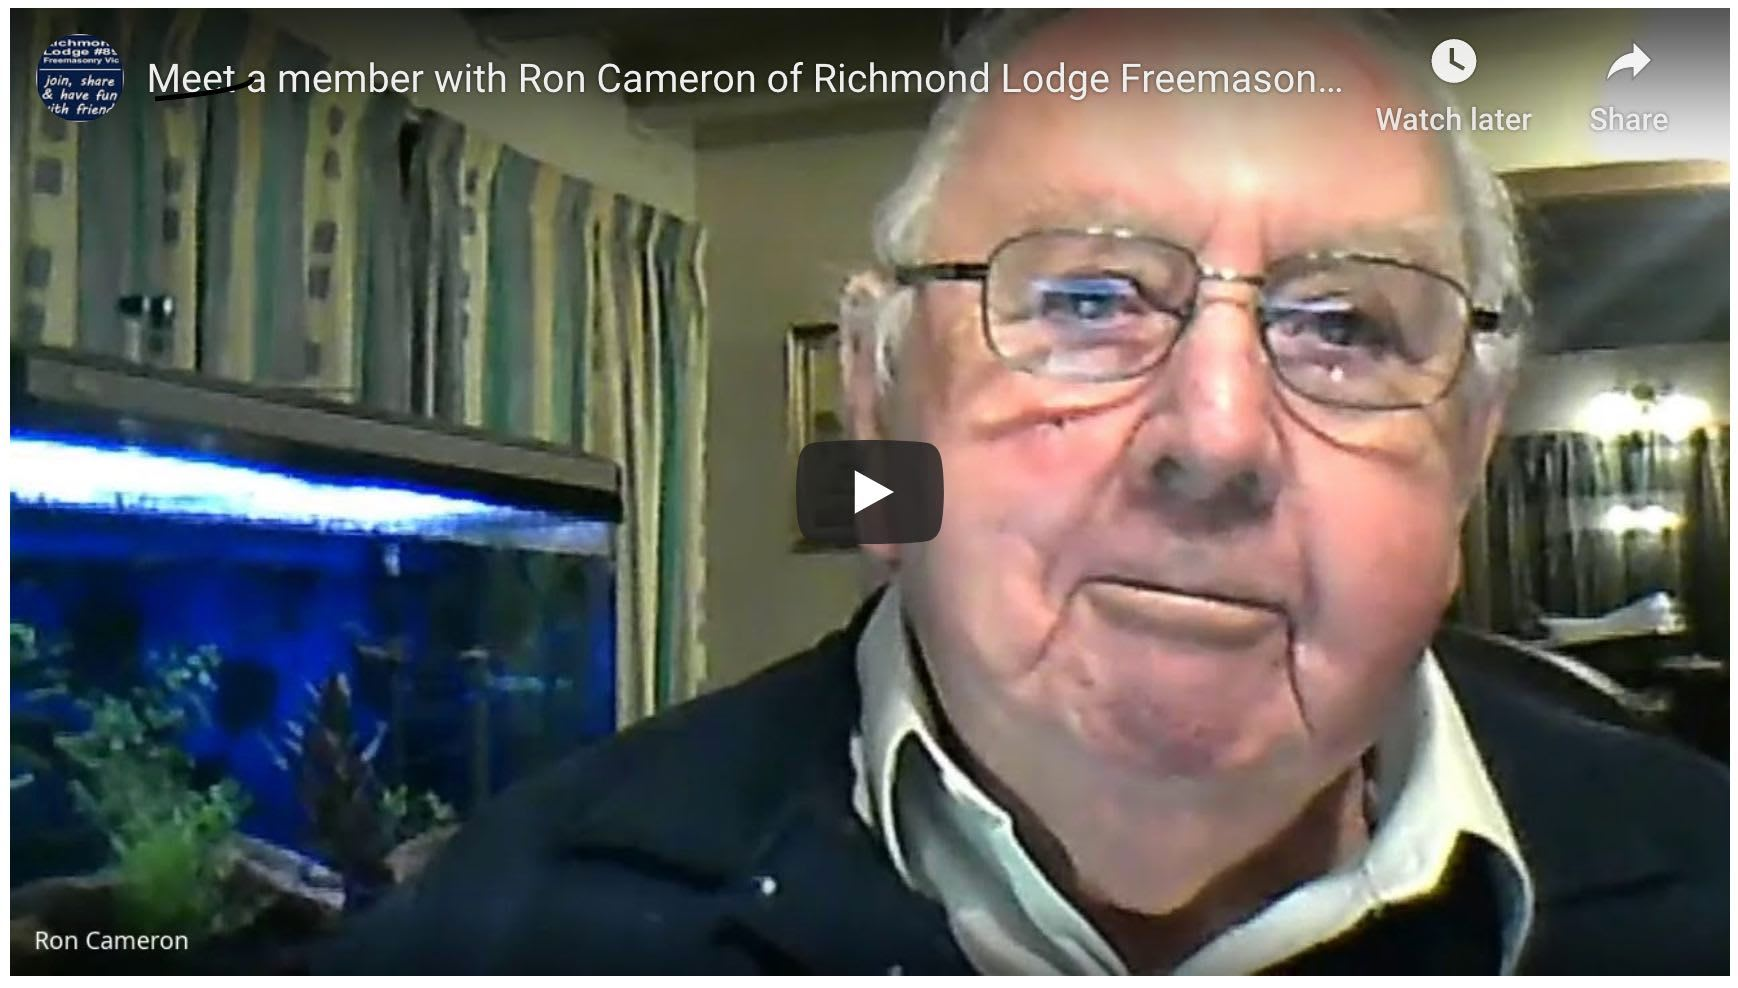 Meet a member with Ron Cameron